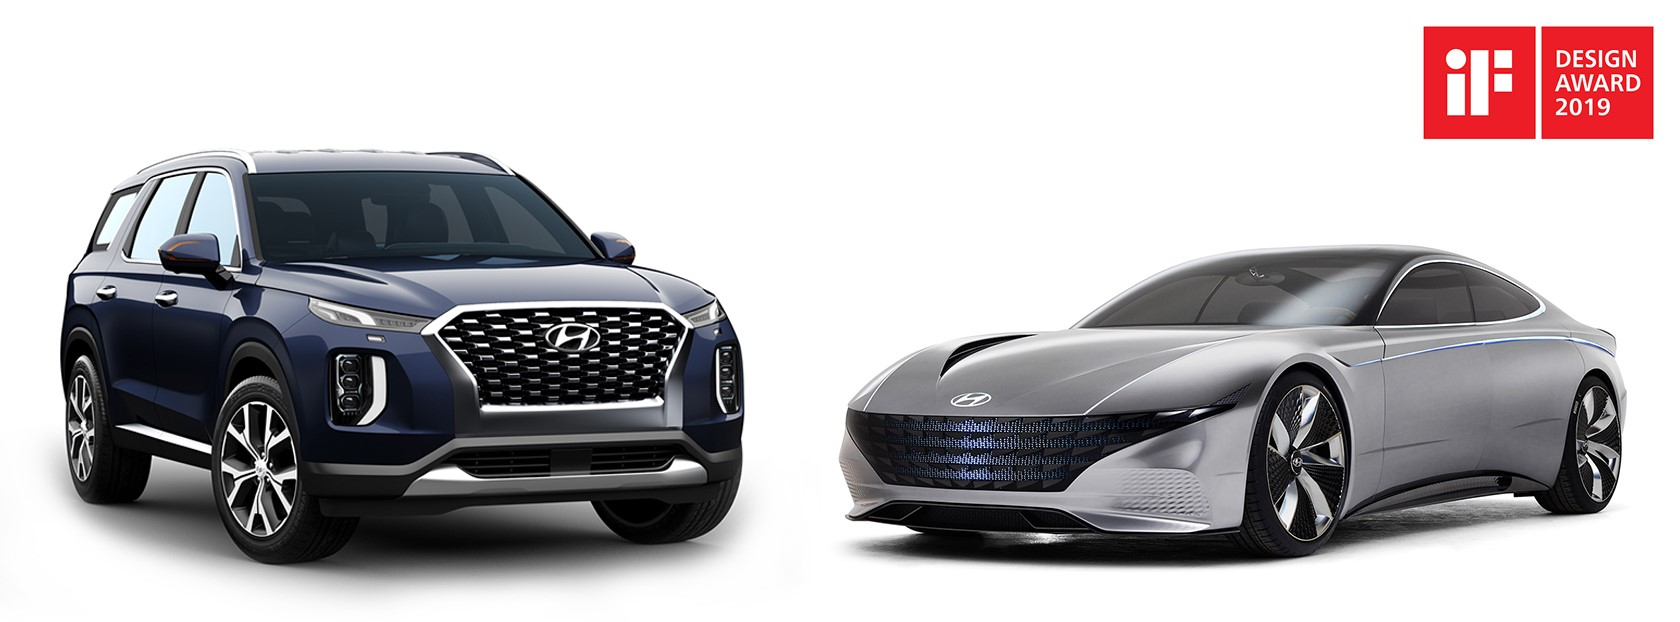 Hyundai remporte des iF Design Awards